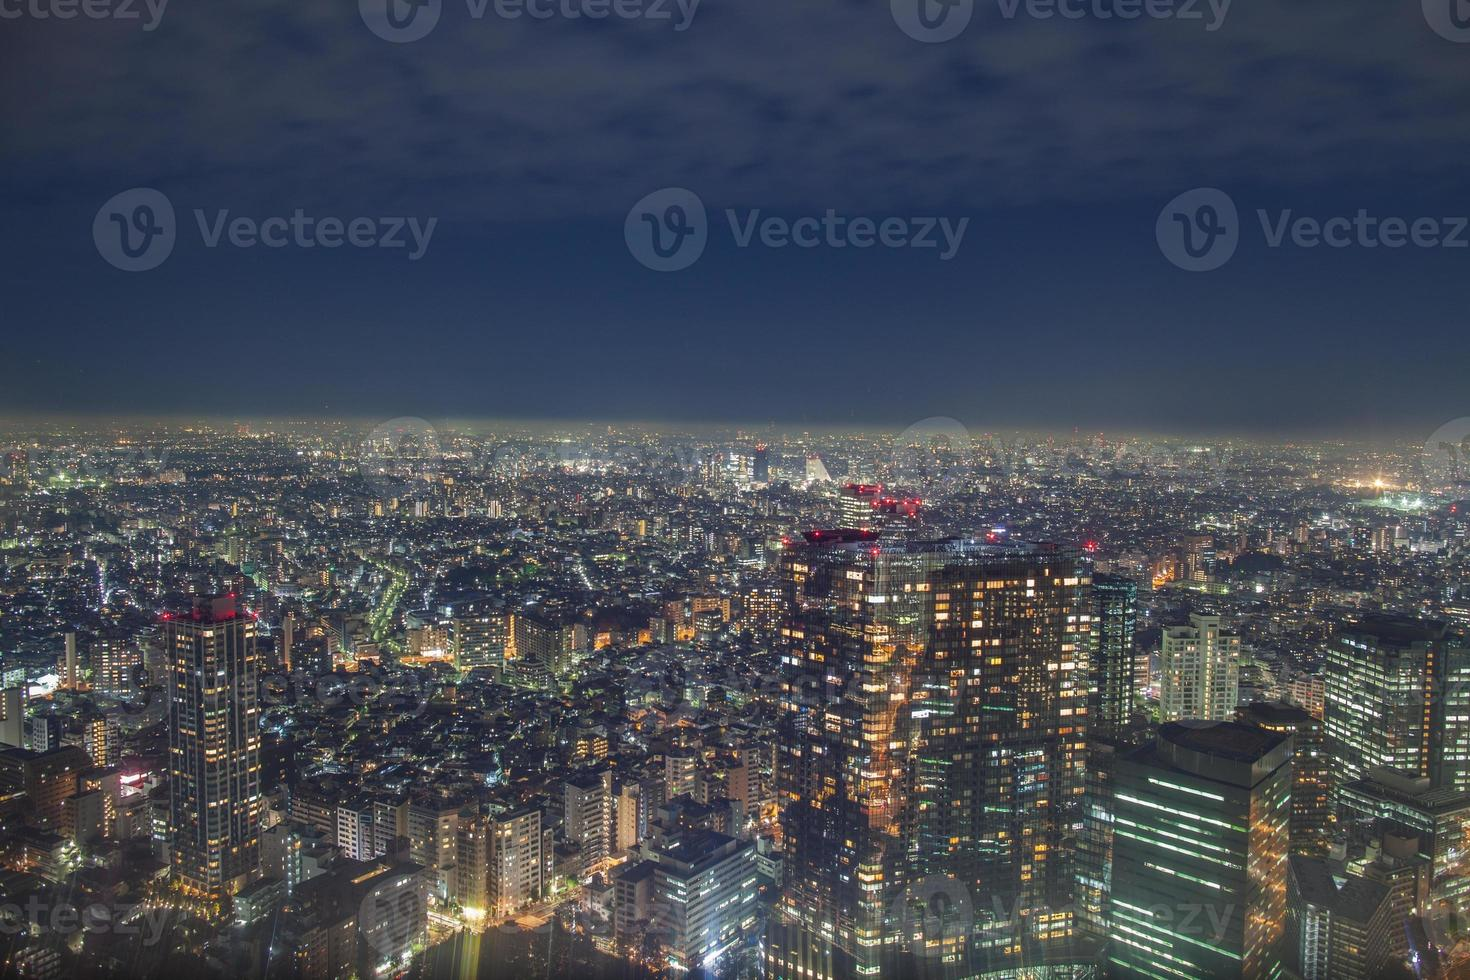 Nightscape view of a city photo